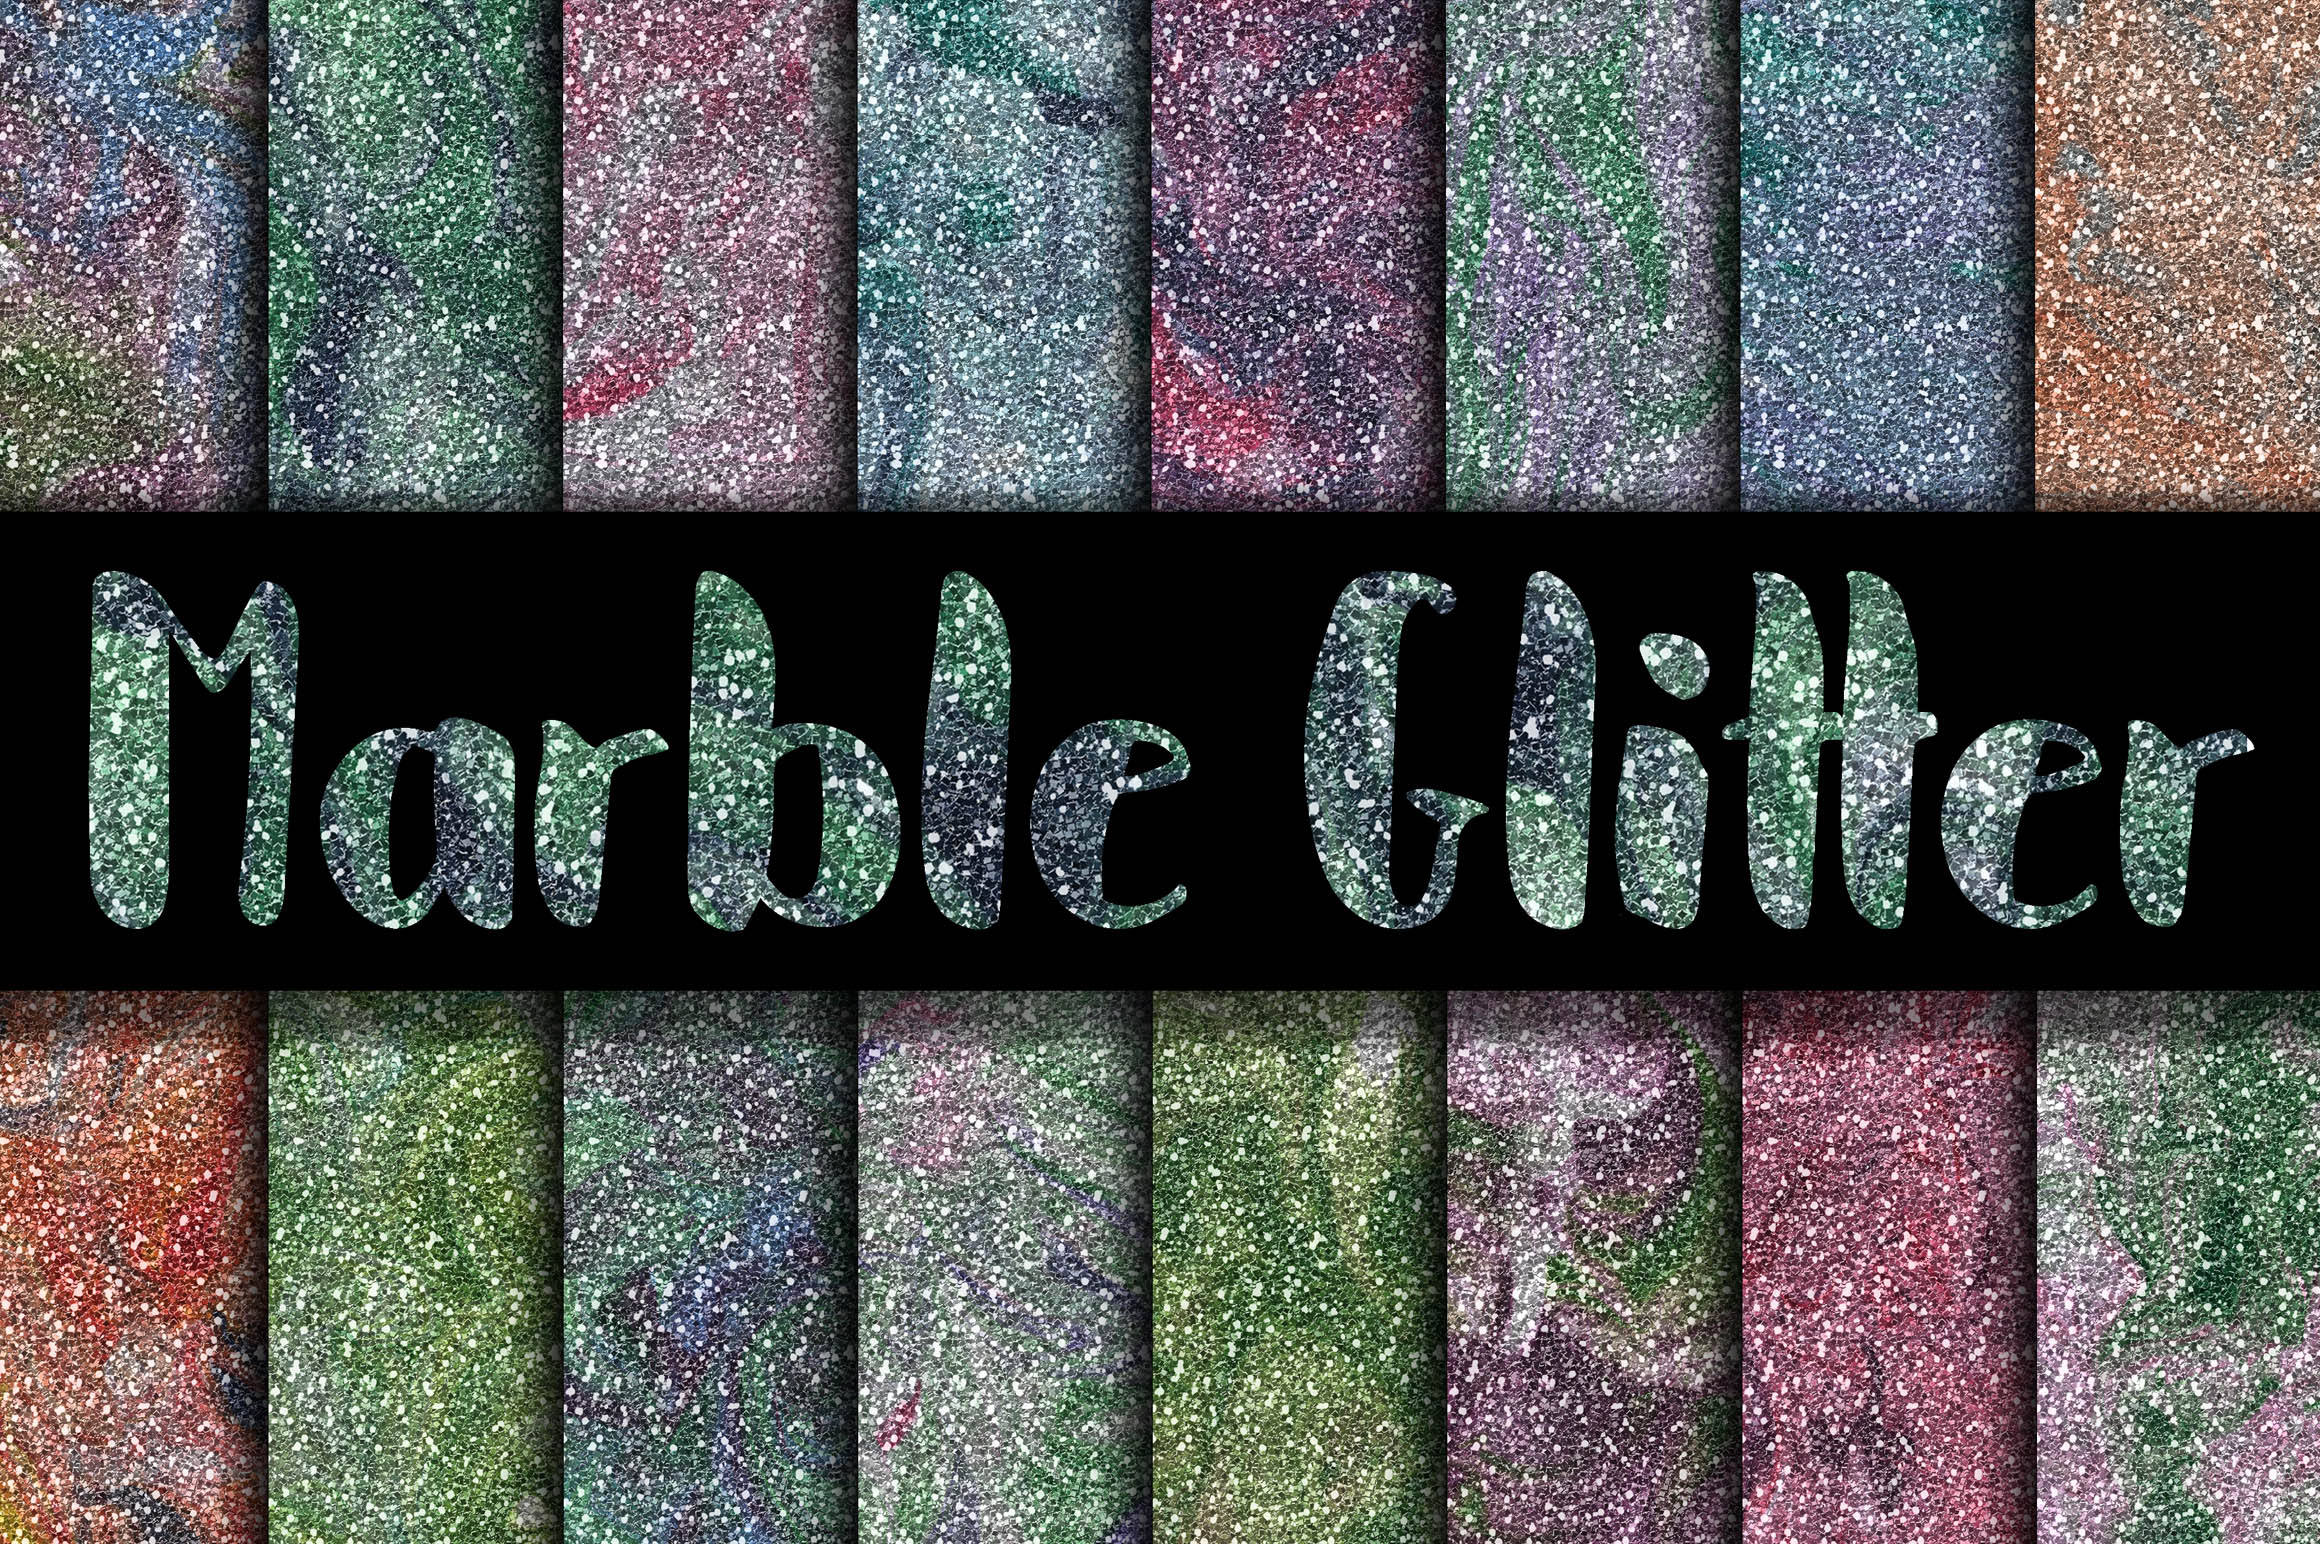 Marble Glitter Digital Paper Textures Graphic By oldmarketdesigns Image 1